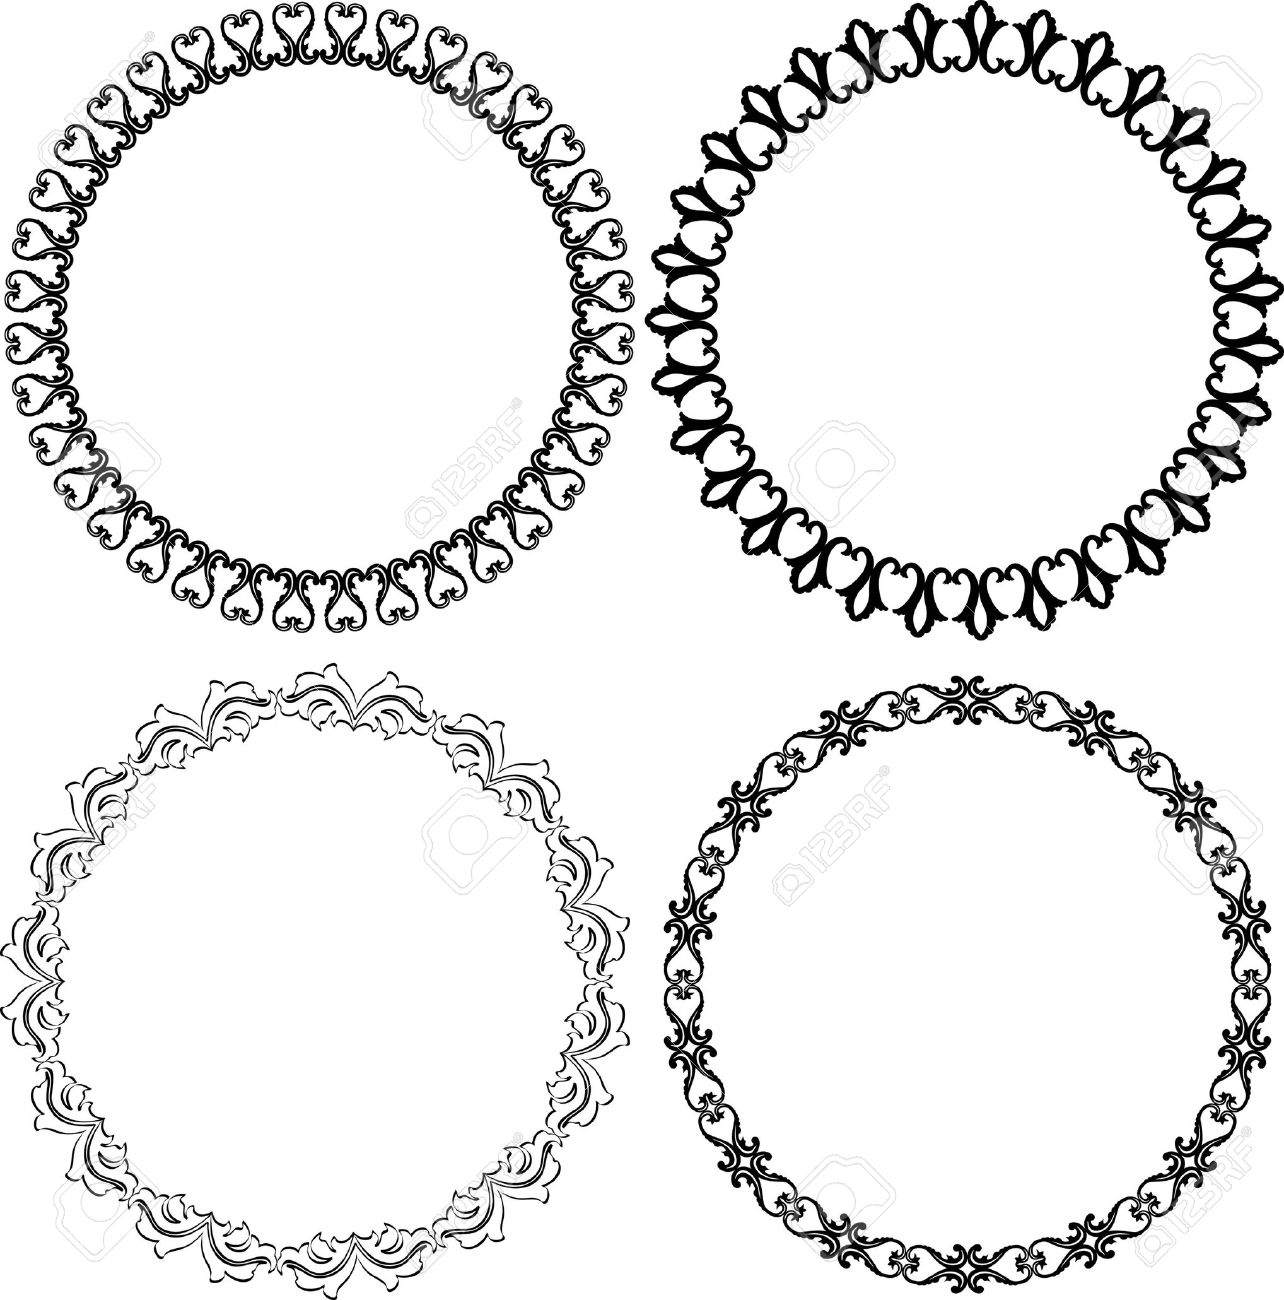 vector set of decorative round frames